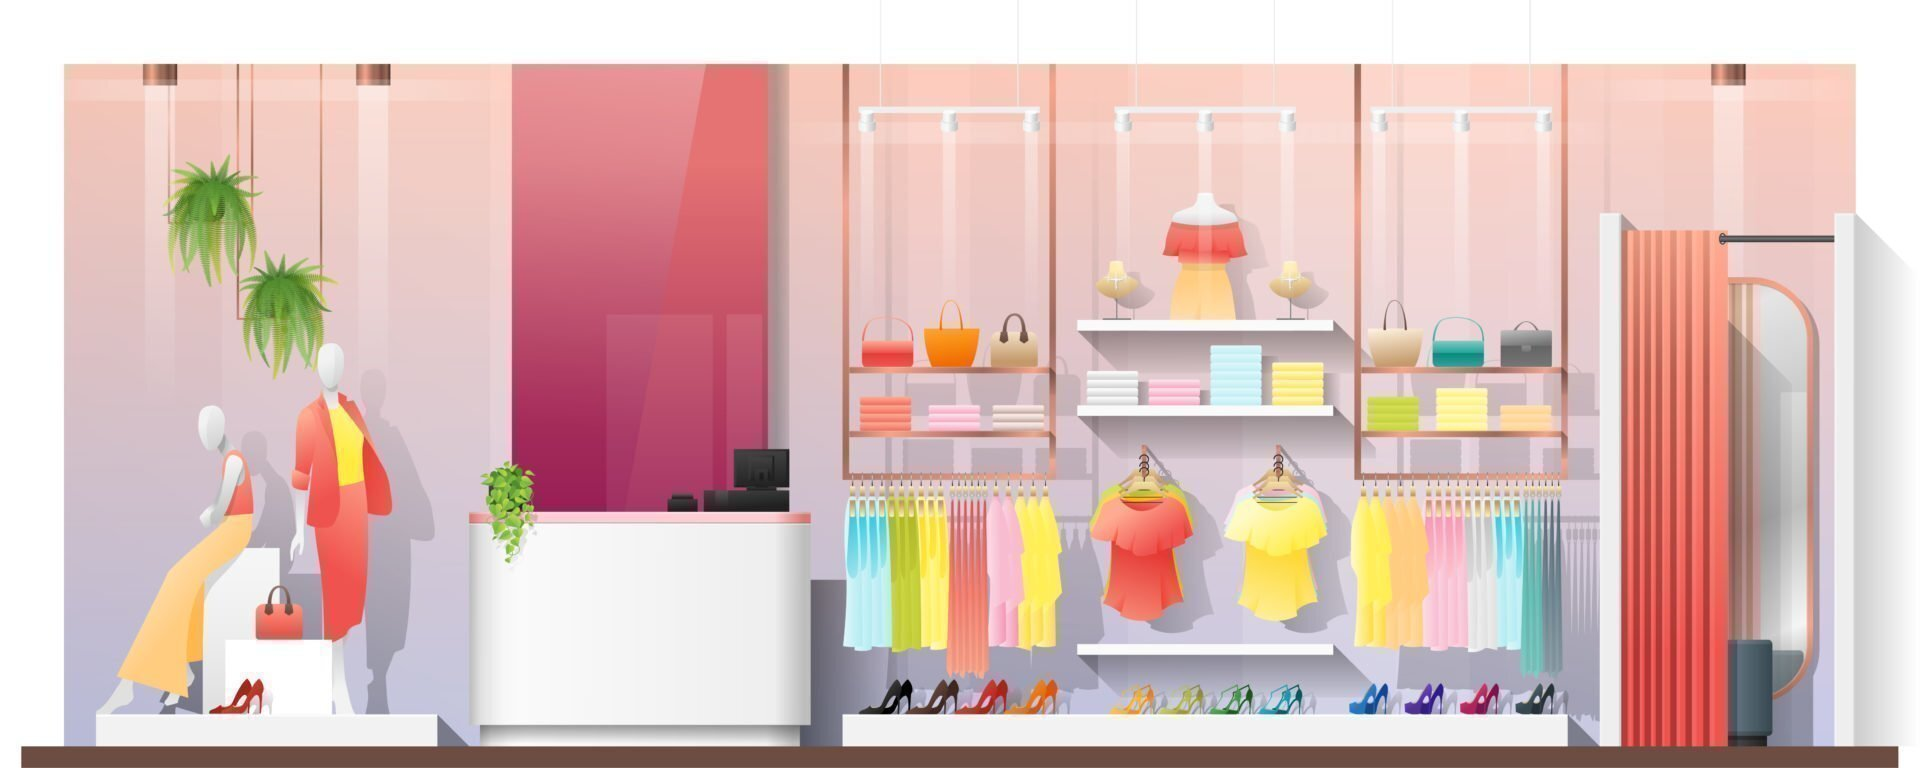 How online visual merchandising can impact your store and increase site conversions